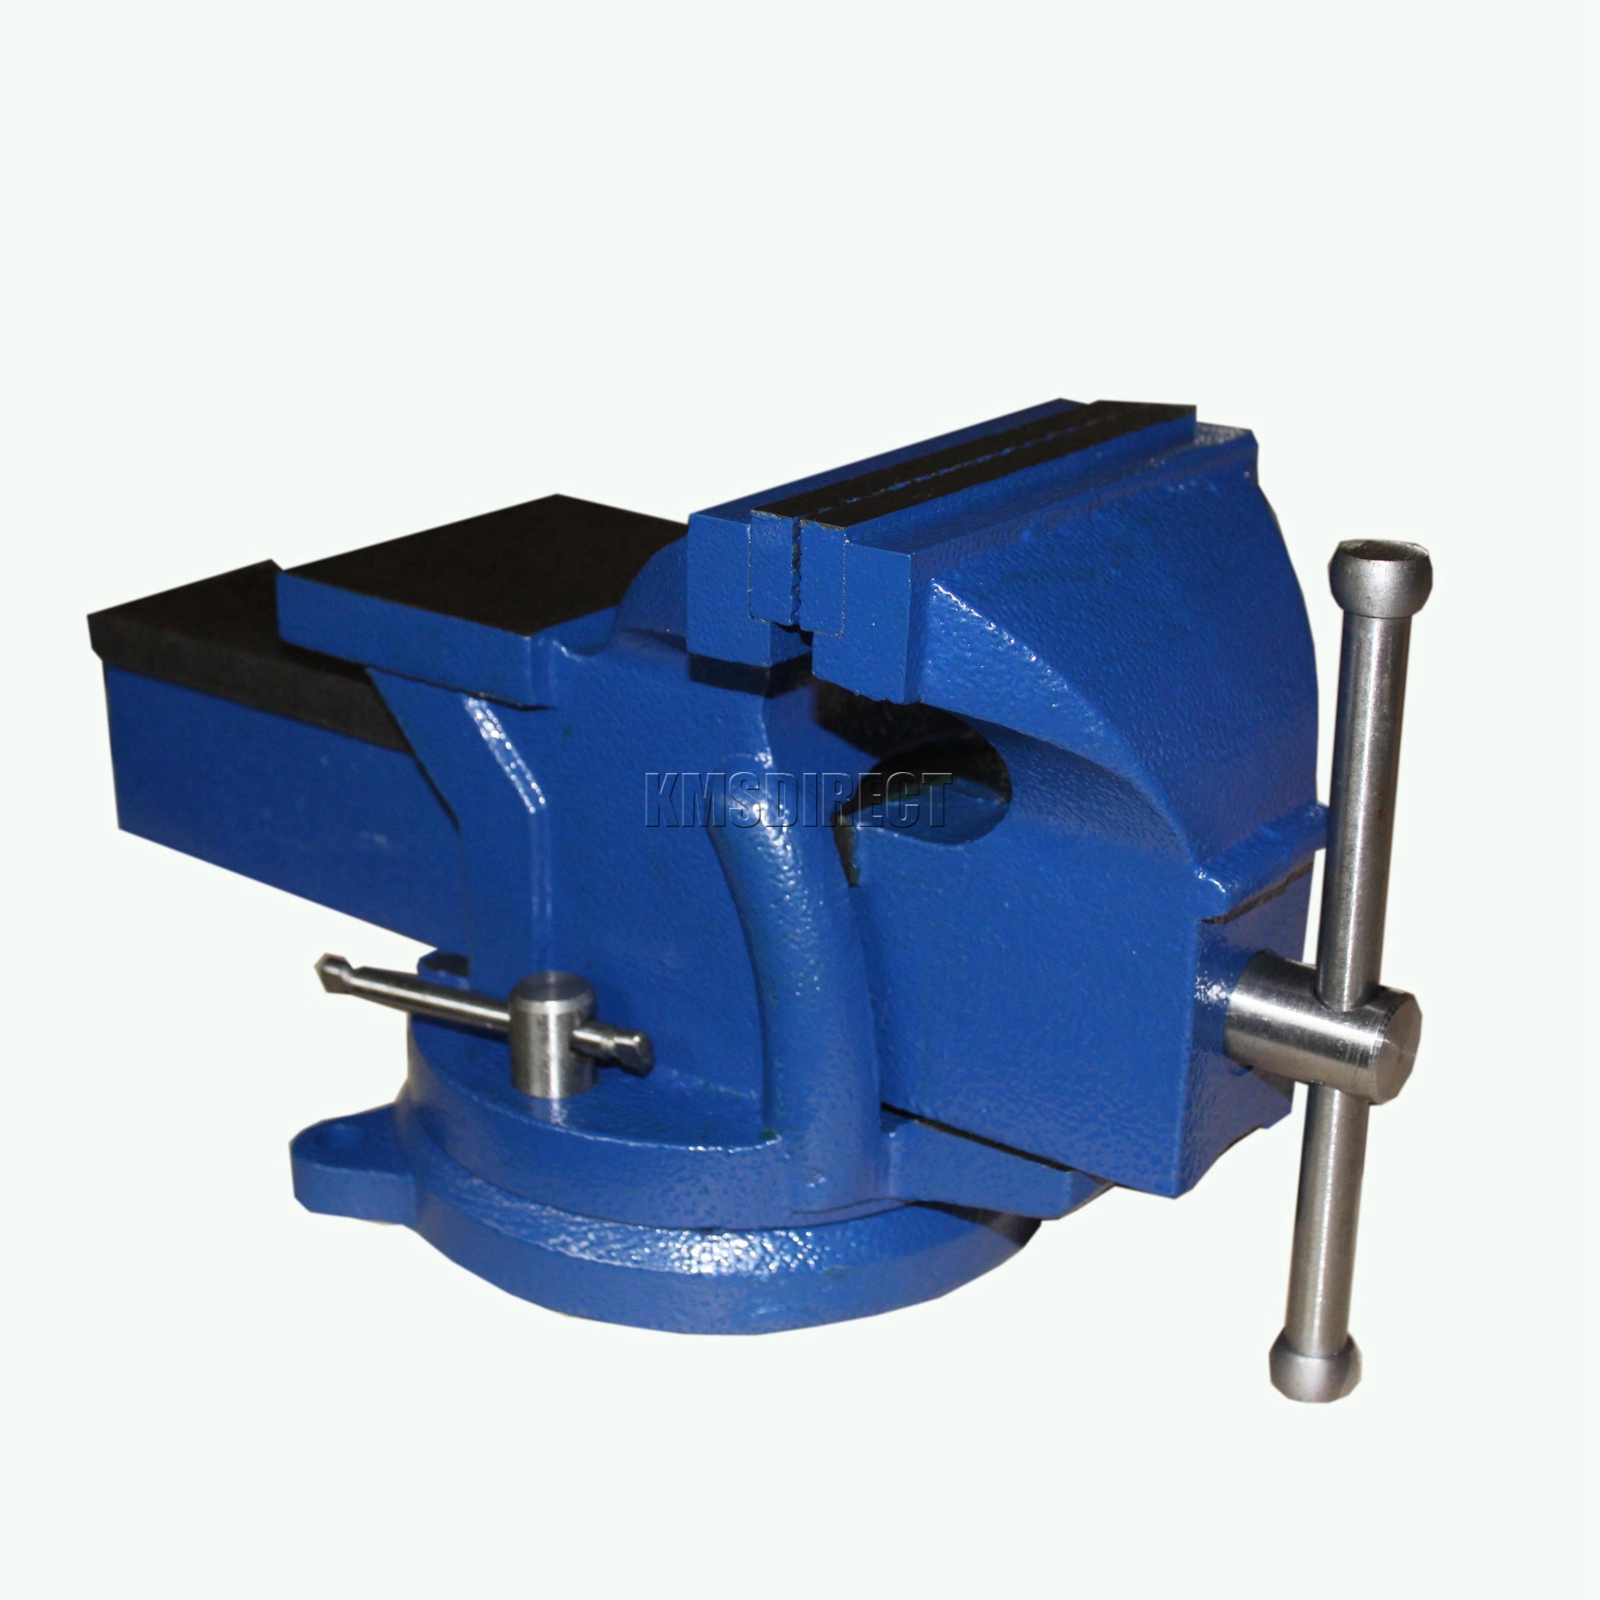 Foxhunter Swivel Base Bench Vice Vise Jaw Clamp For Workbench Table Garage Tool Ebay